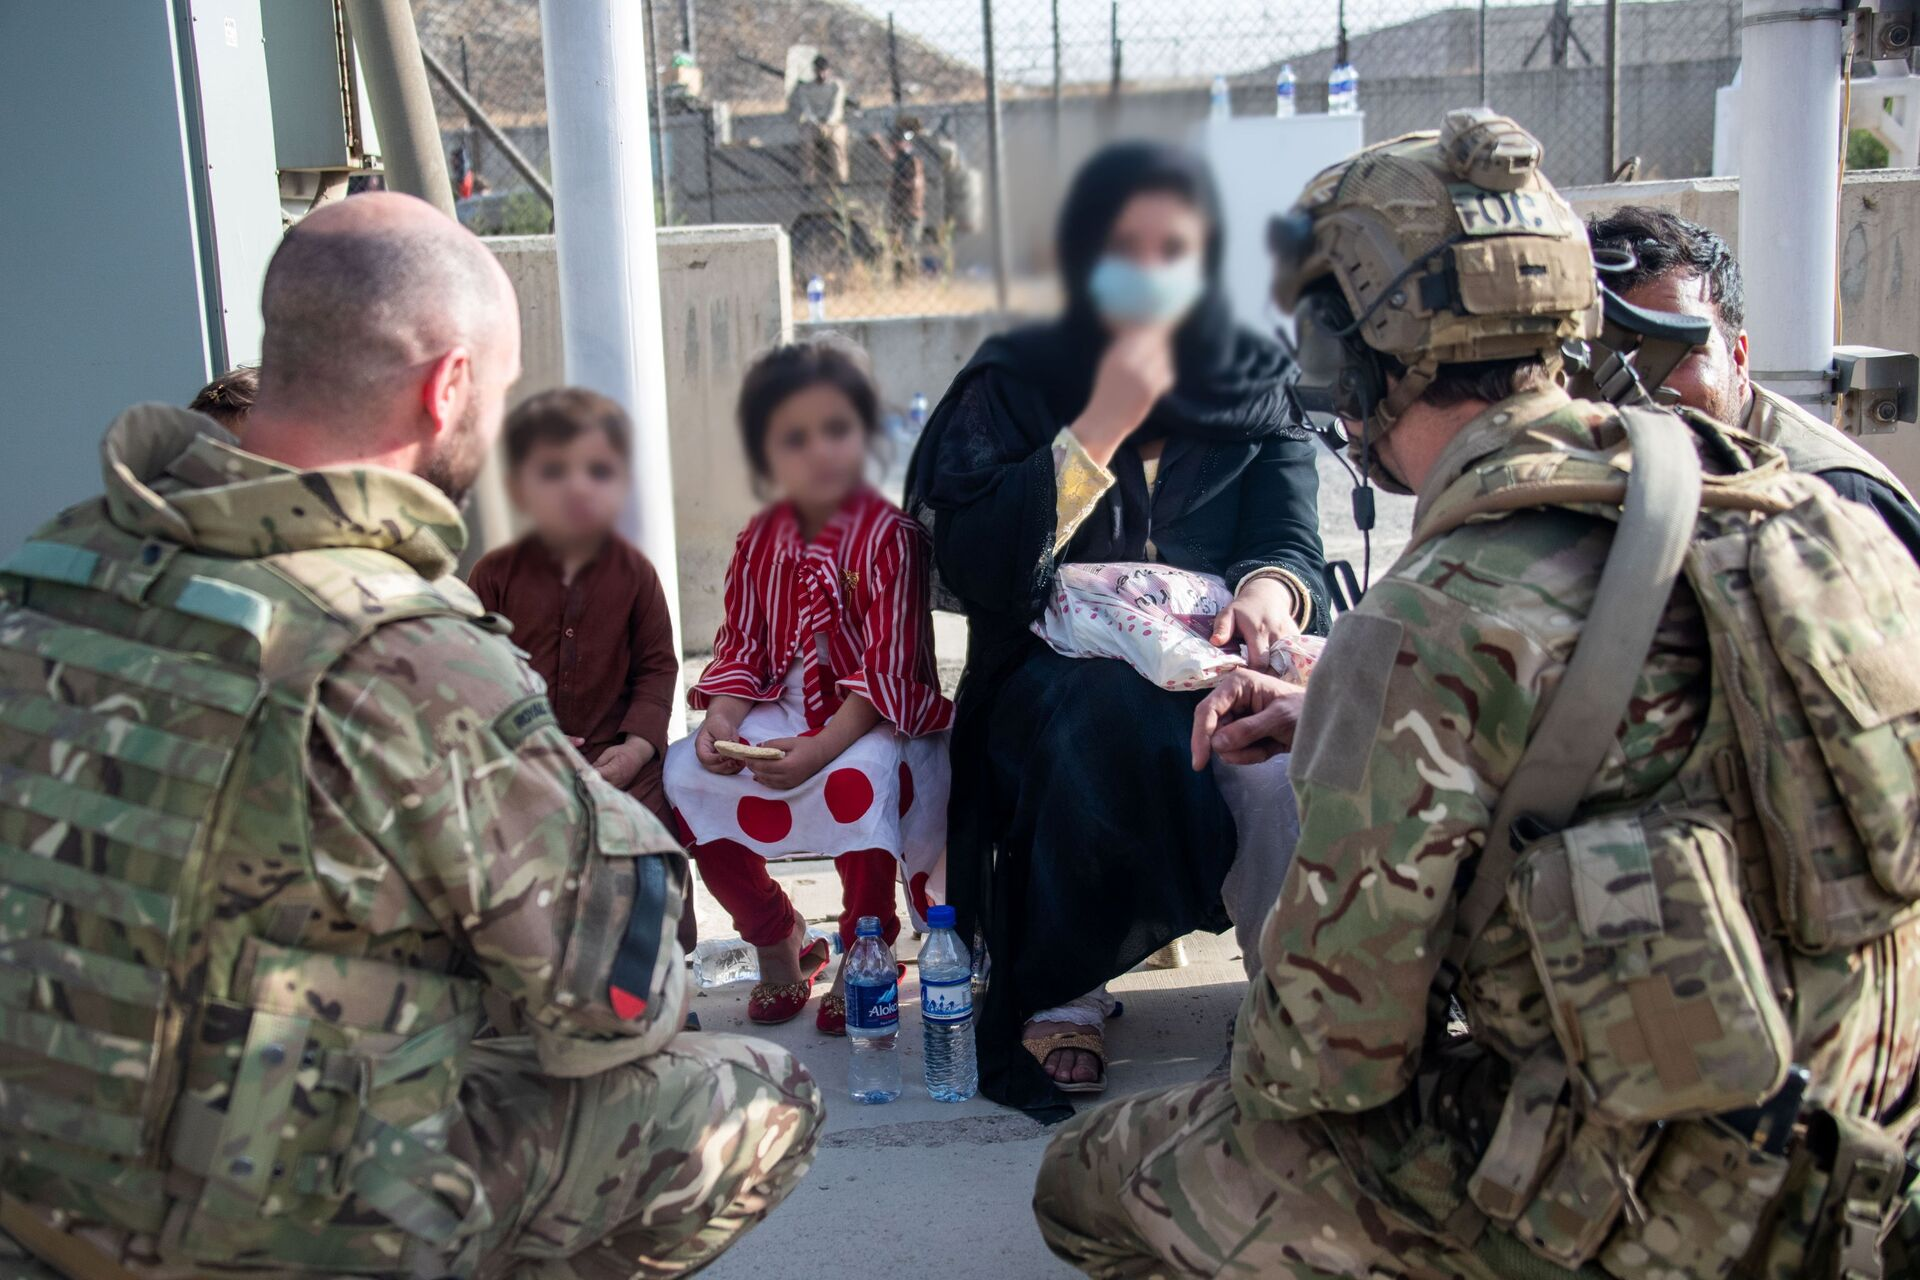 Members of the UK Armed Forces who continue to take part in the evacuation of entitled personnel from Kabul airport, in Kabul, Afghanistan August 19-22, 2021 - Sputnik International, 1920, 07.09.2021